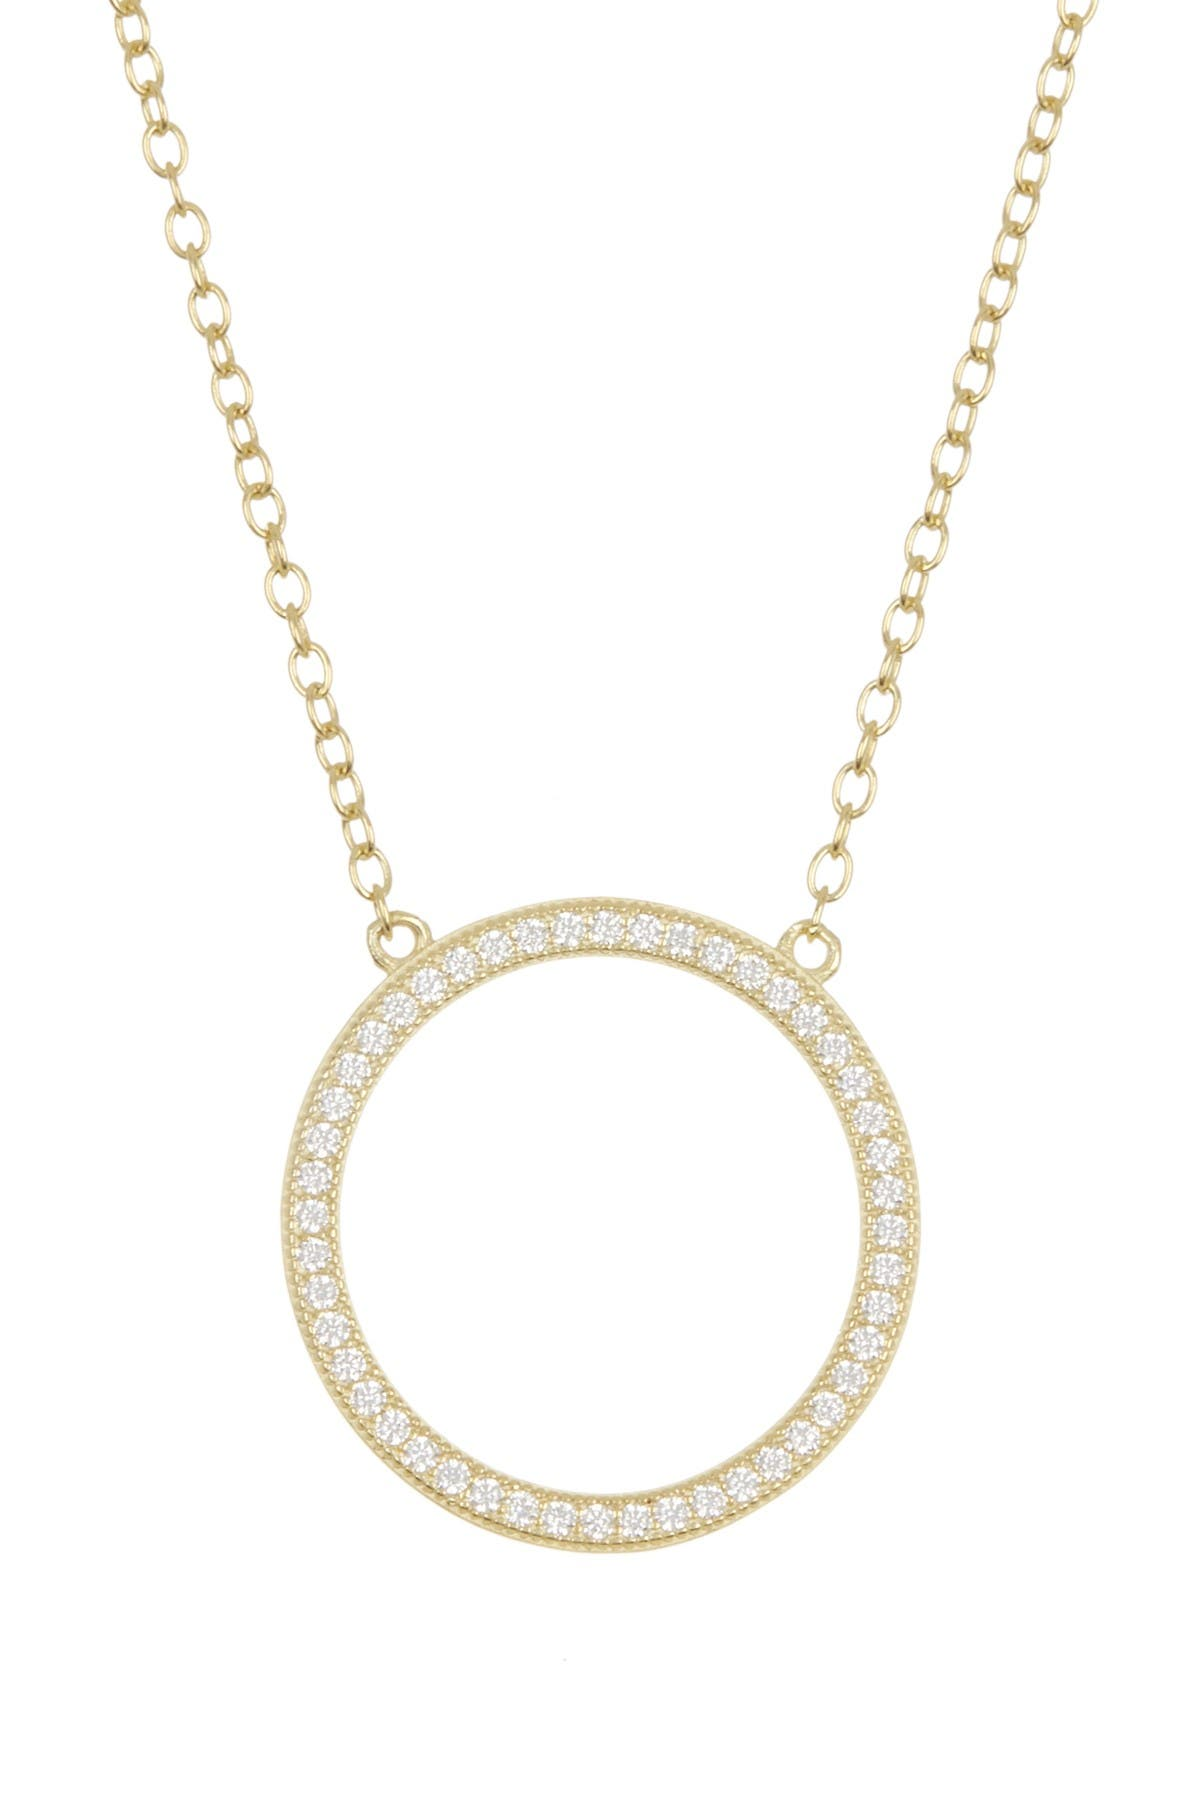 Image of ADORNIA Sterling Silver Pave Open Circle Pendant Necklace